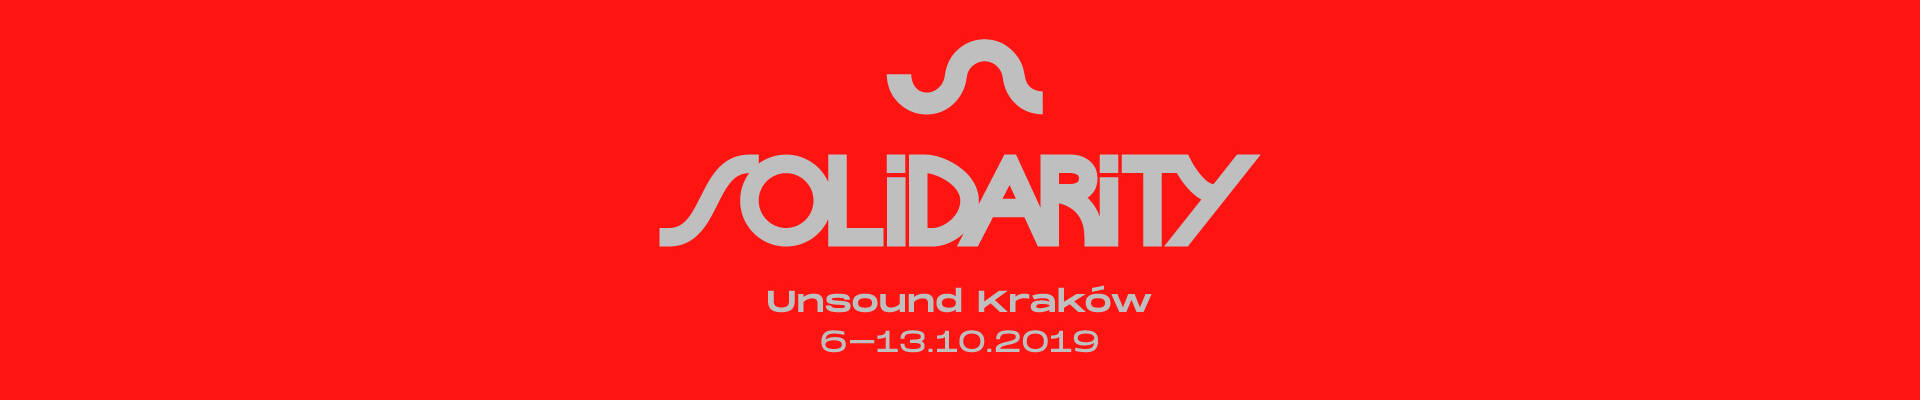 Unsound 2019: Solidarity